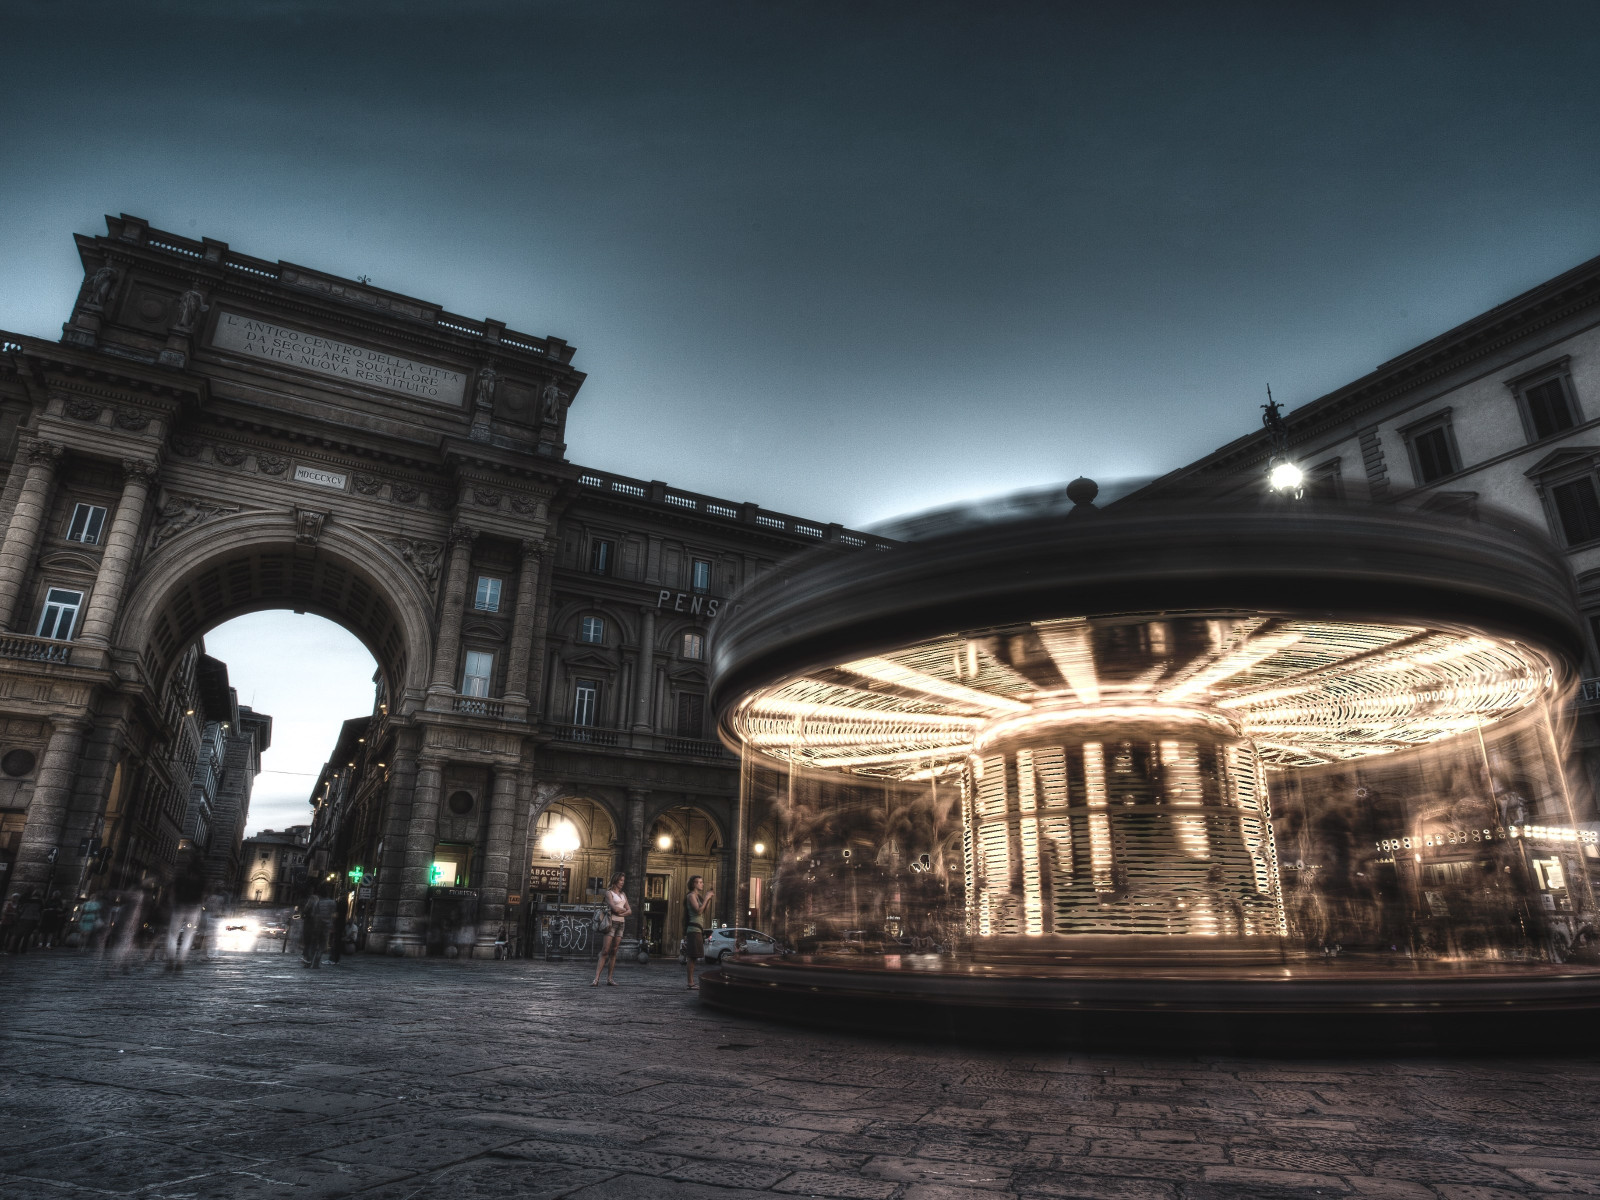 Carousel, people and buildings from Florence wallpaper 1600x1200